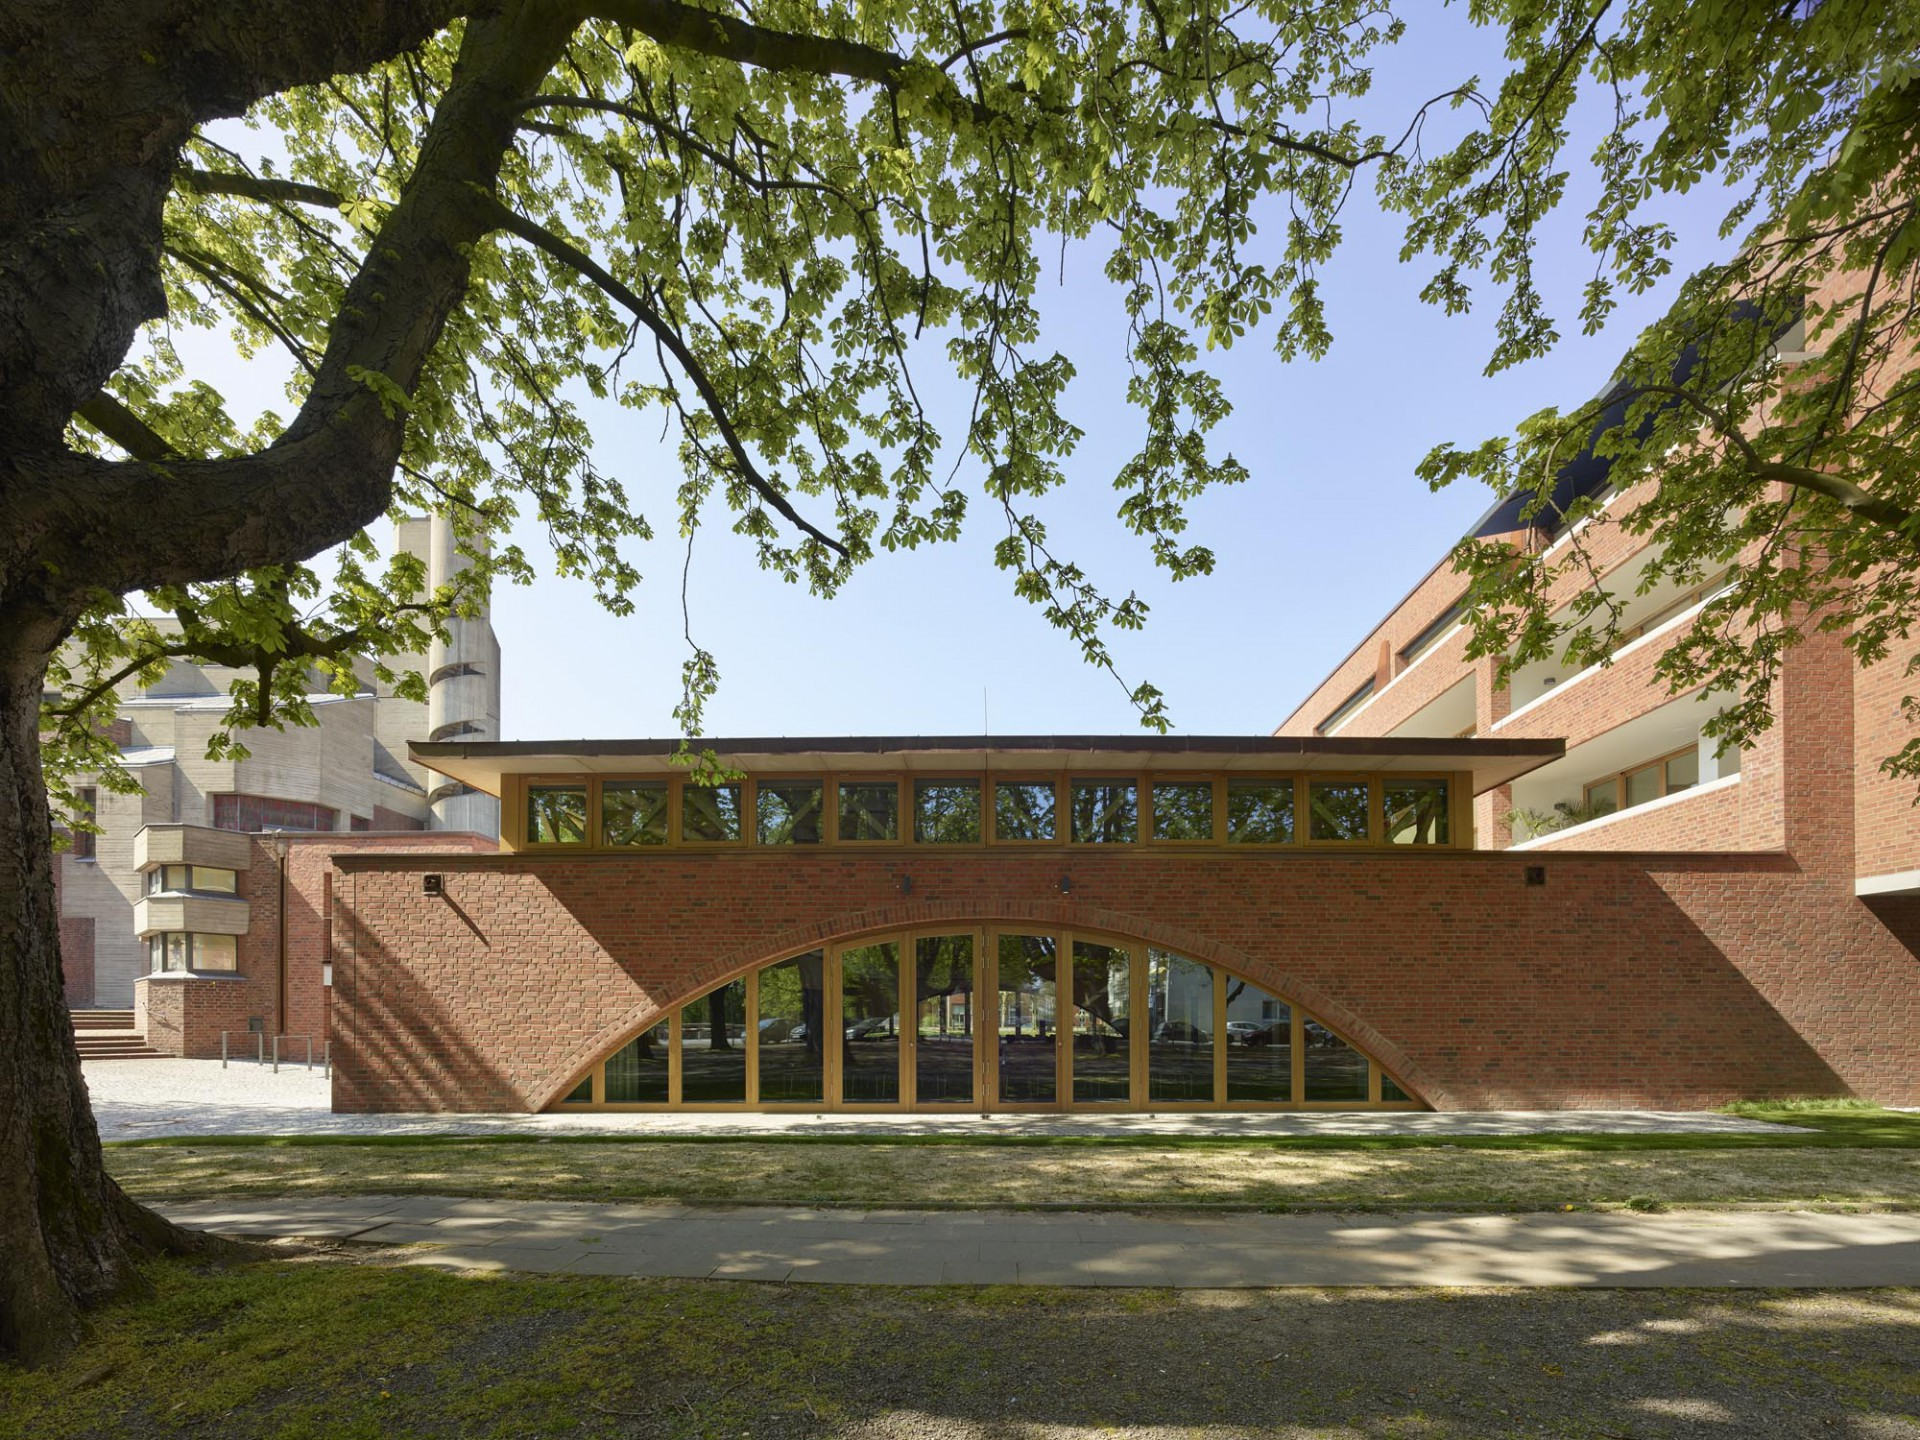 School Annex and Housing, Cologne-Lindenthal